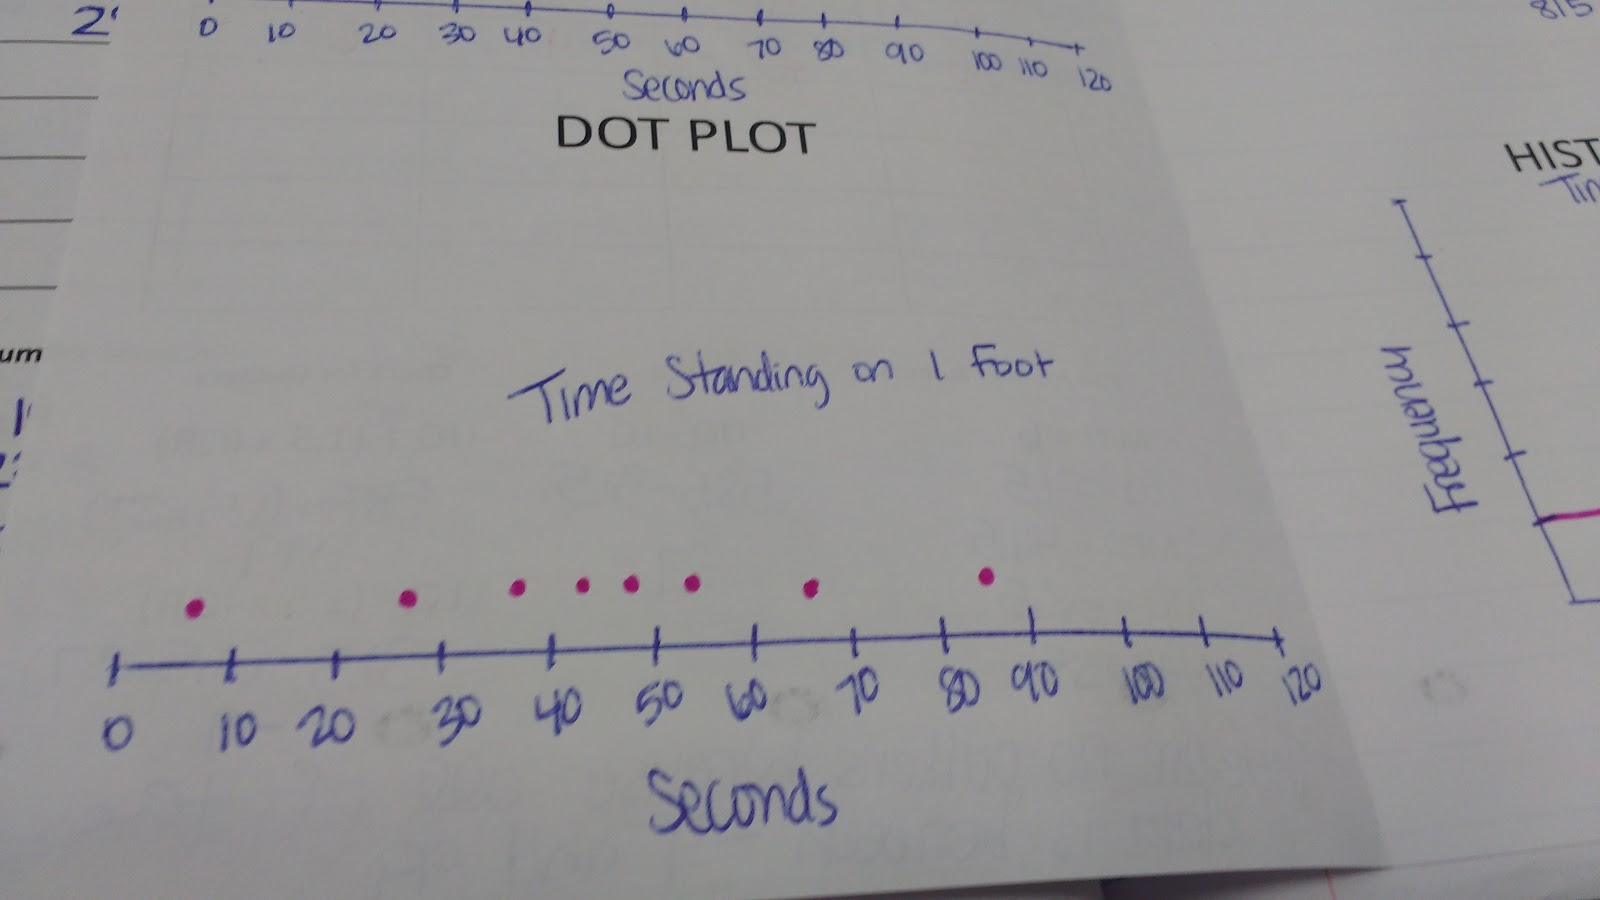 I want to put graph paper in the background for the stem-and-leaf plot to  help students align their data more evenly.